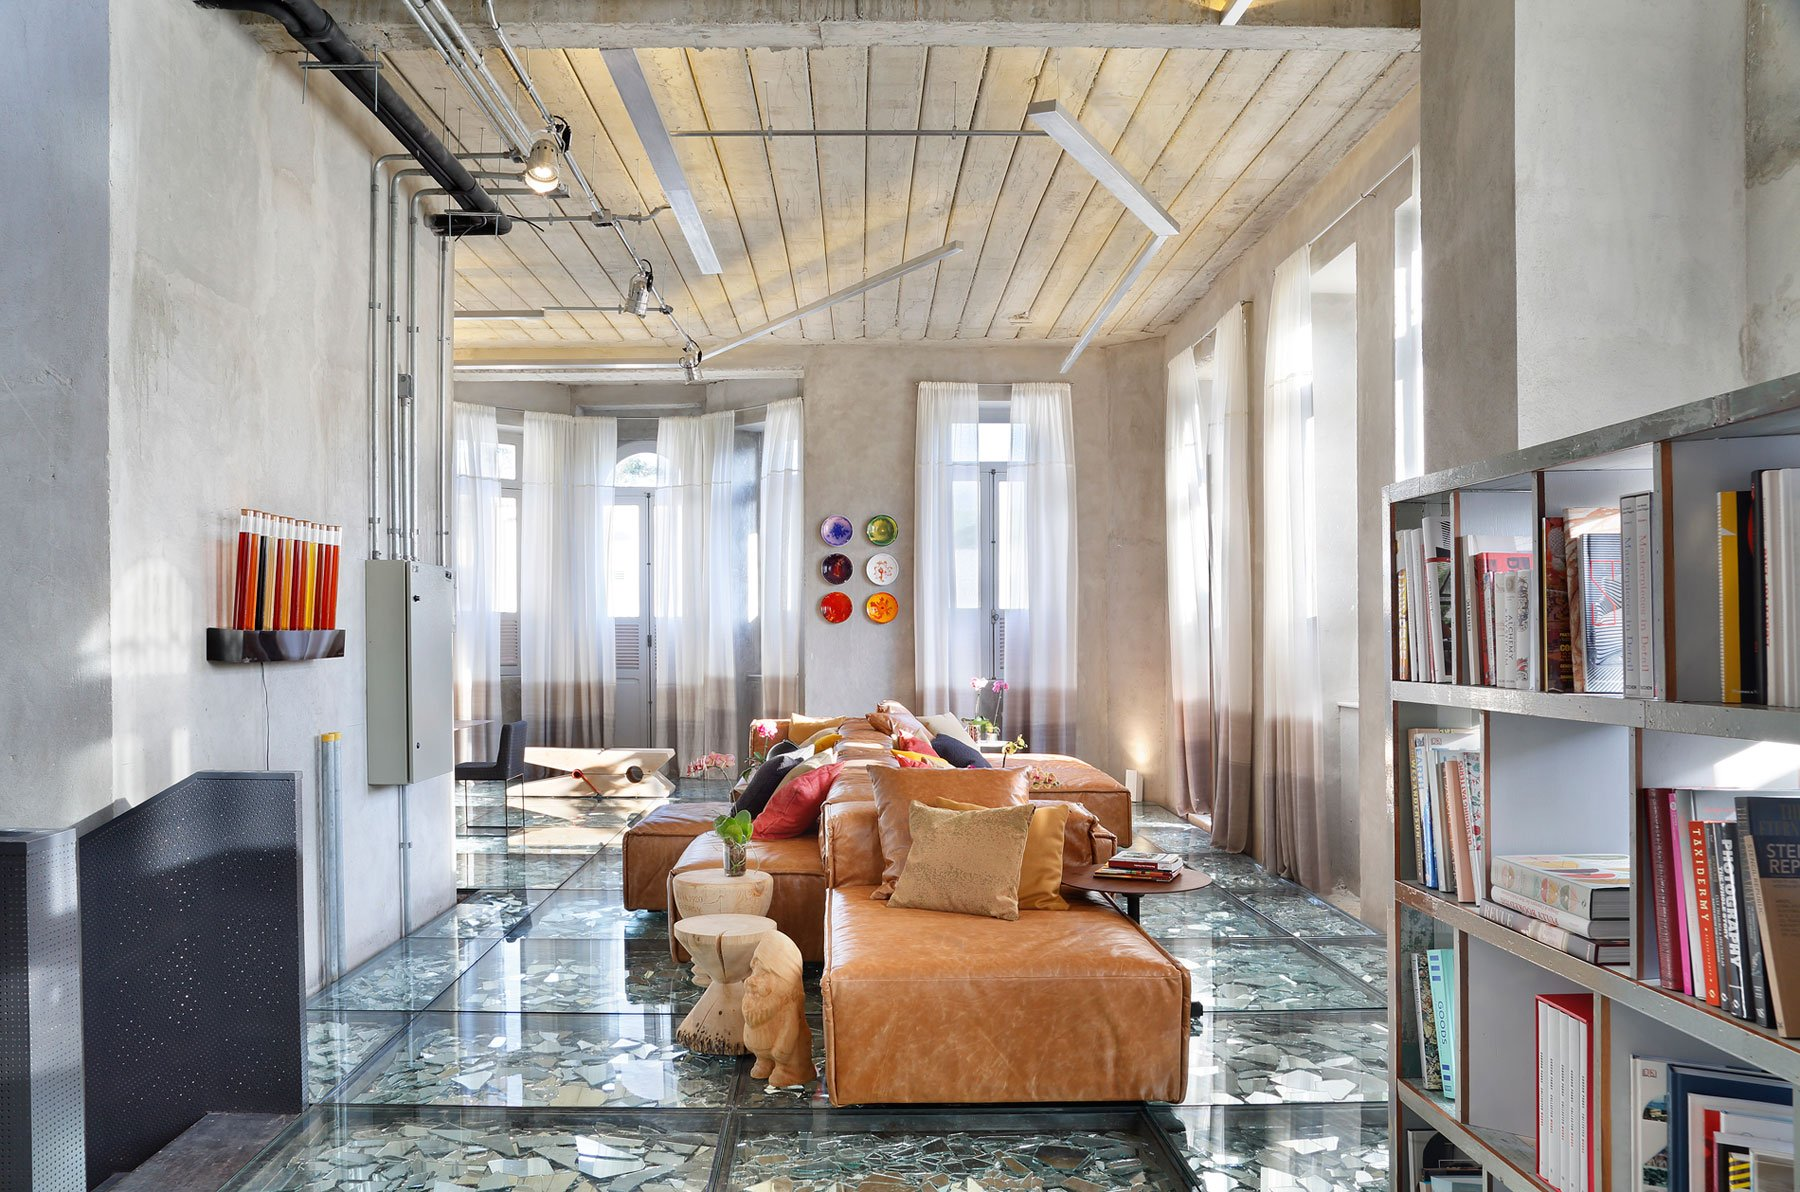 Stylish and Eclectic Design with Broken Glass Floor of Lab LZ for Casa Cor Rio 2015 by Giselle Taranto Architecture-04